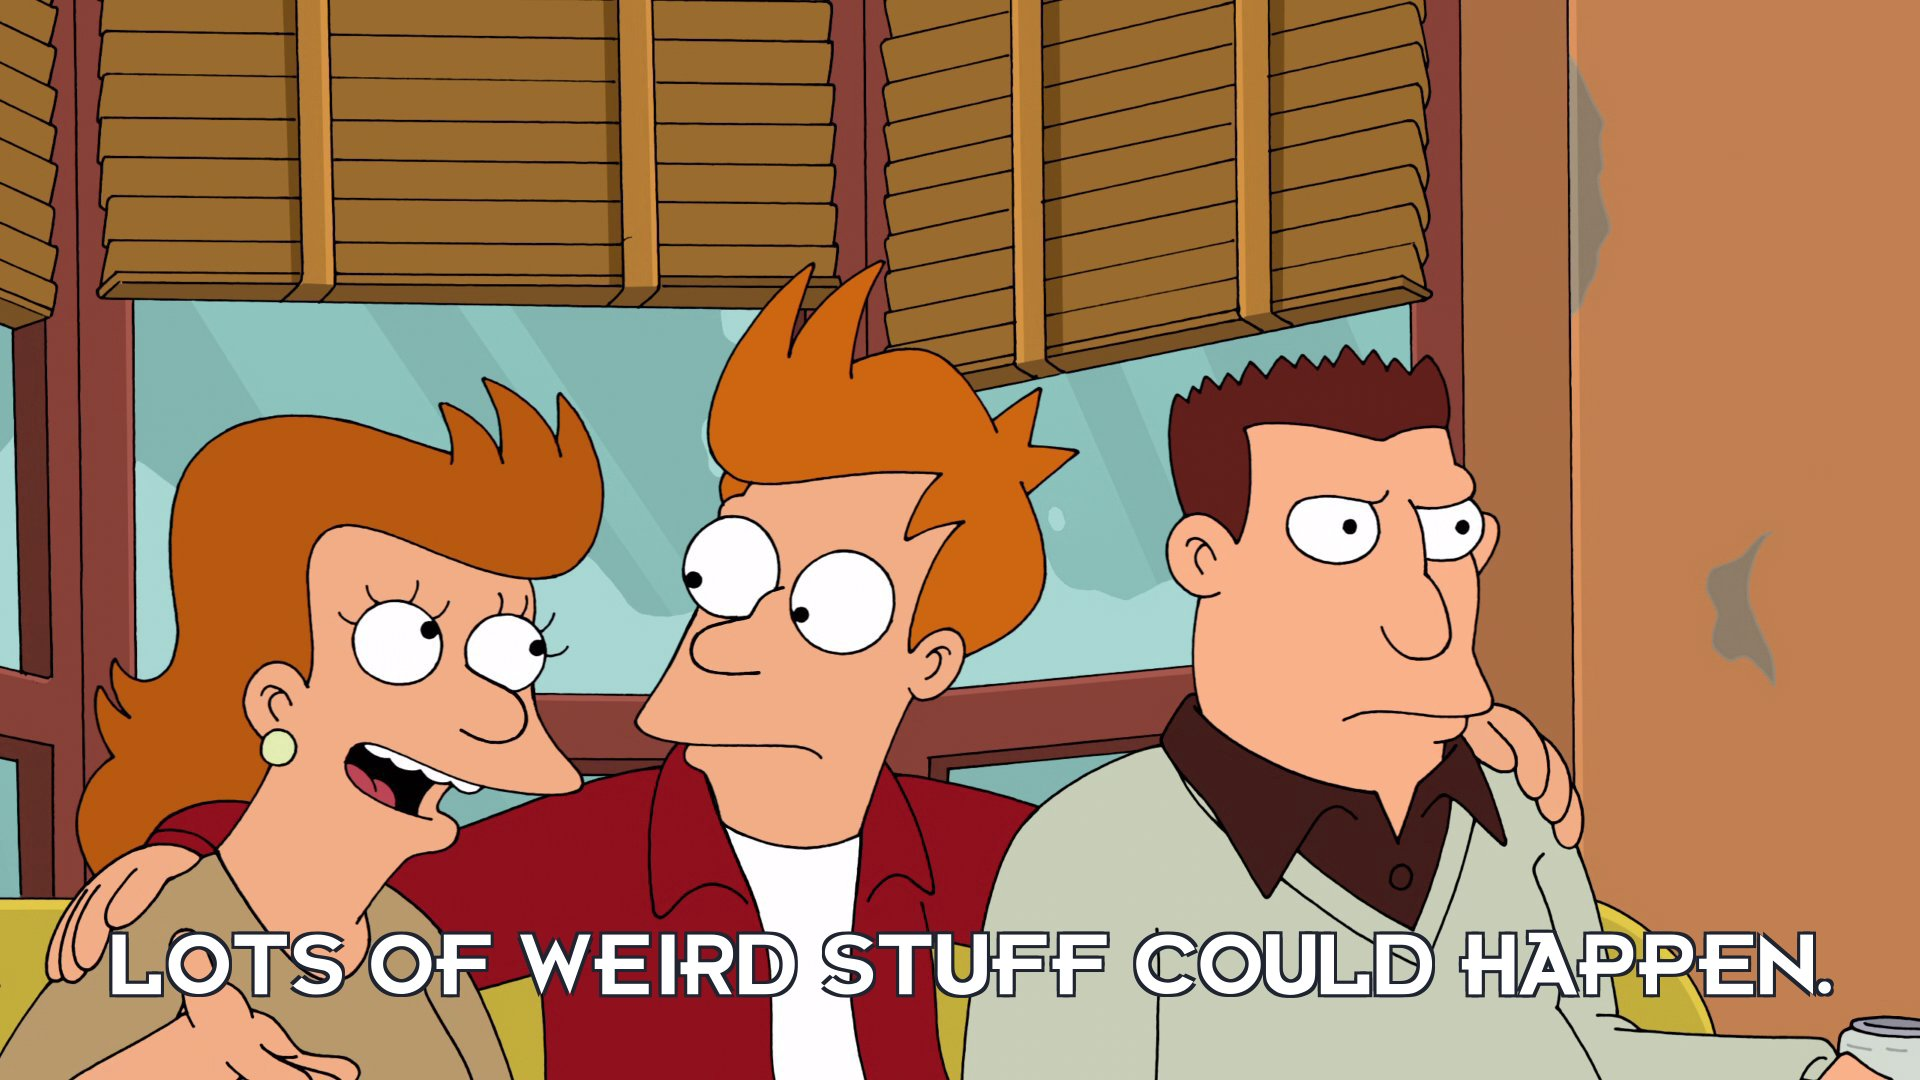 Fry's mother: Lots of weird stuff could happen.